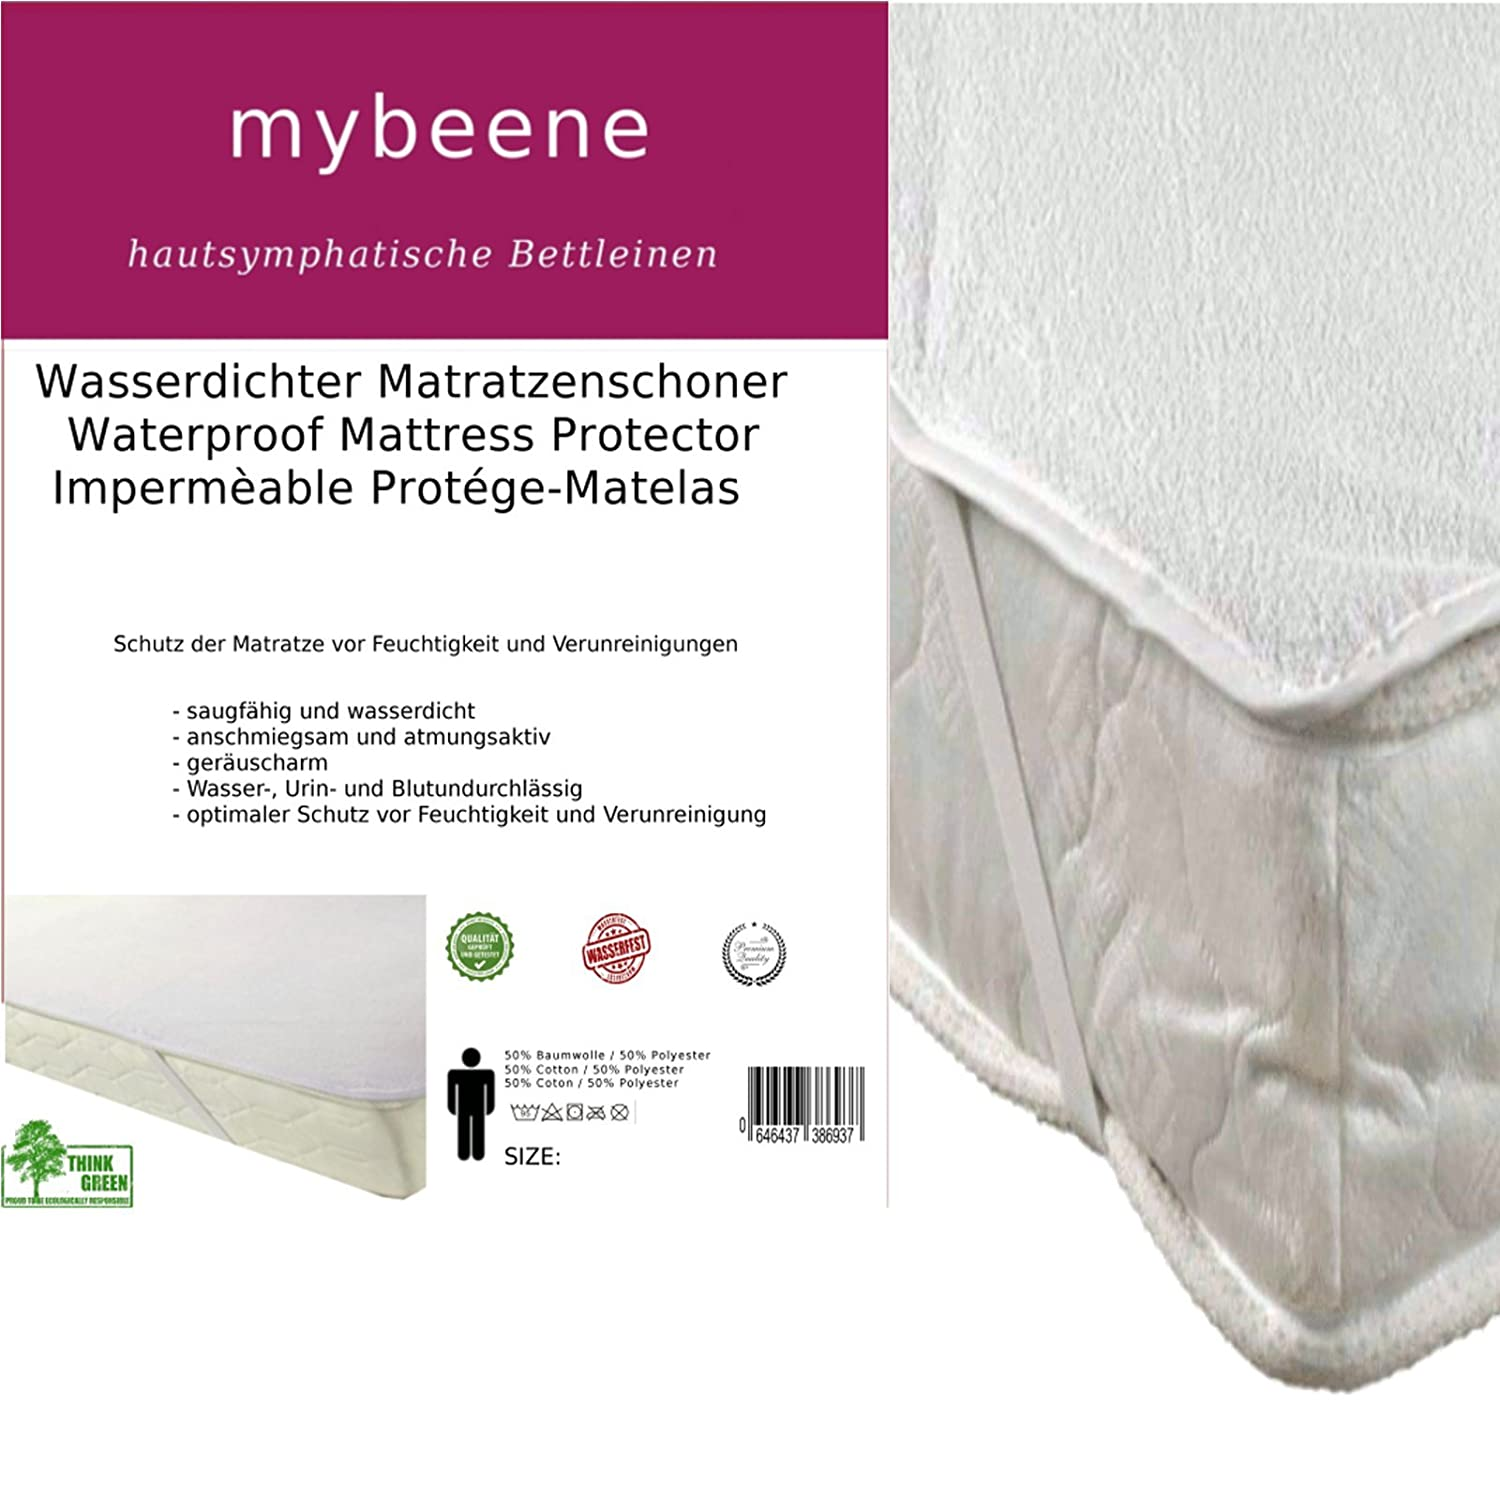 Mybeen Waterproof Mattress Protector in Various Sizes with 4 rubber straps | Terry Towelling Breathable | dryer safe and noiseless protective cover | white. mybeene